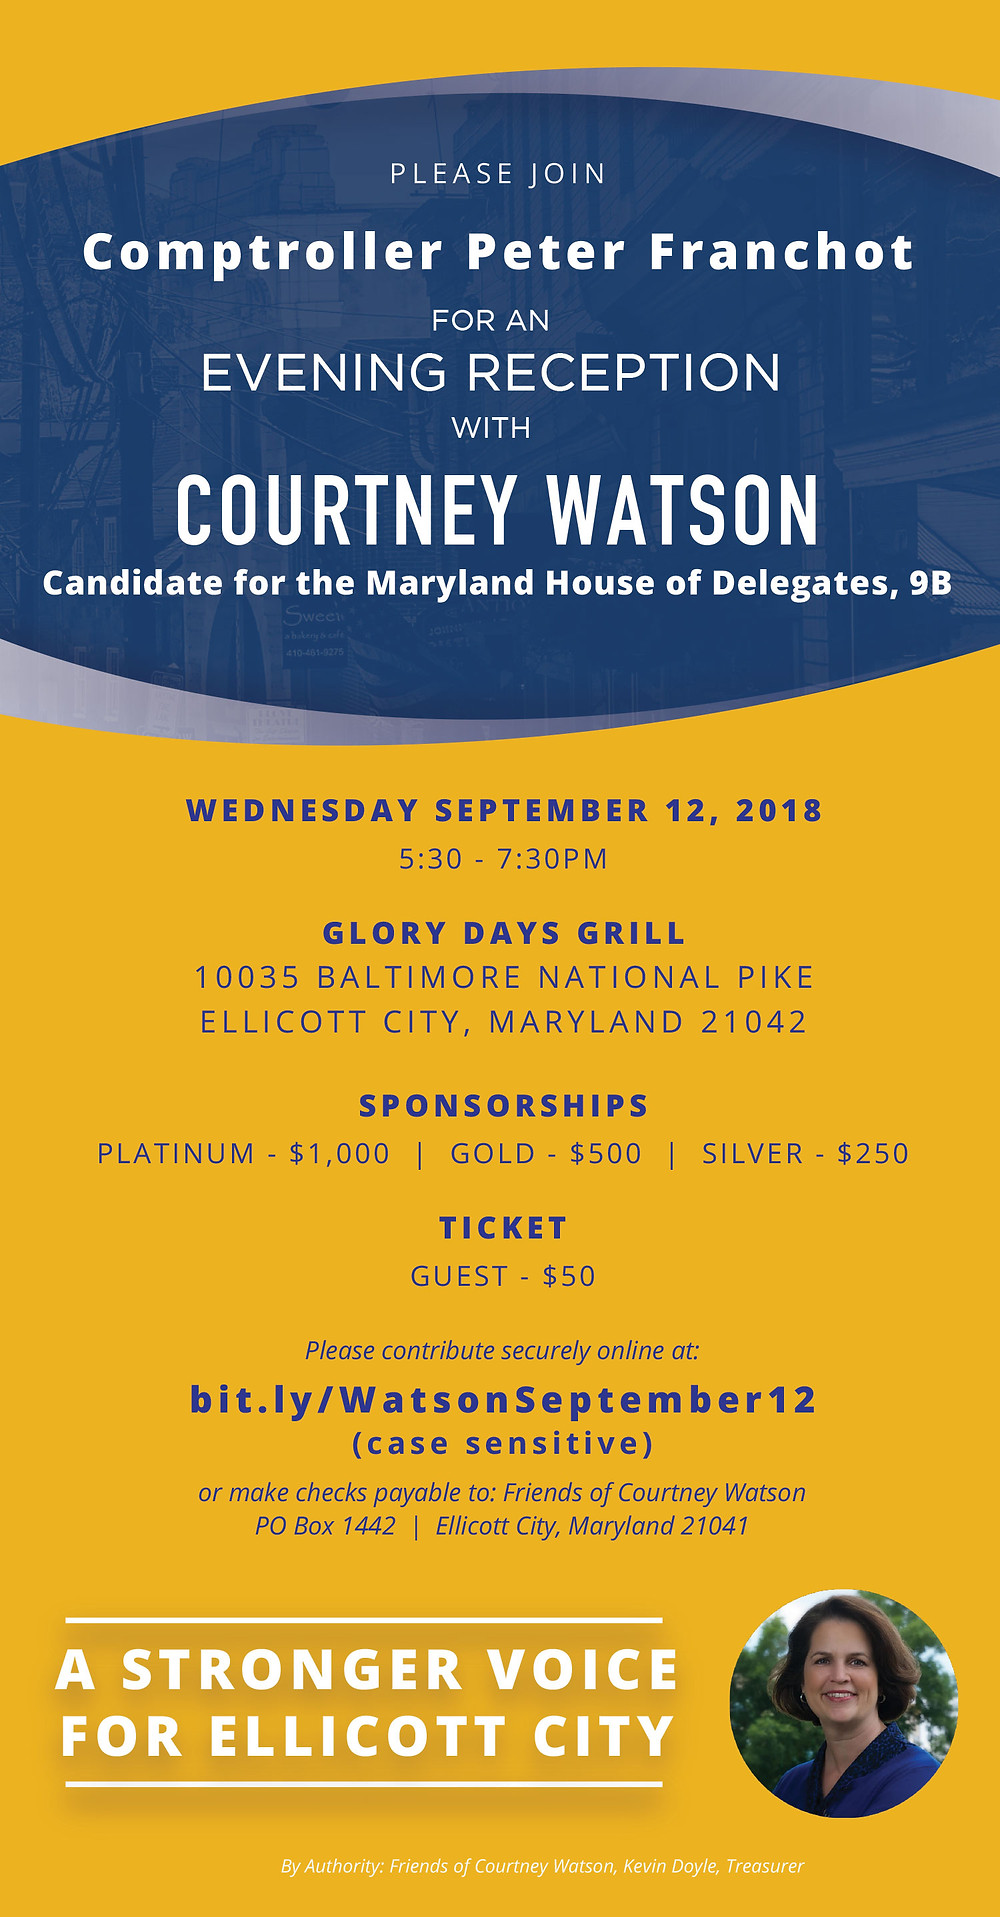 Join MD Comptroller Peter Franchot for an Evening Reception with Courtney Watson on 9/12!